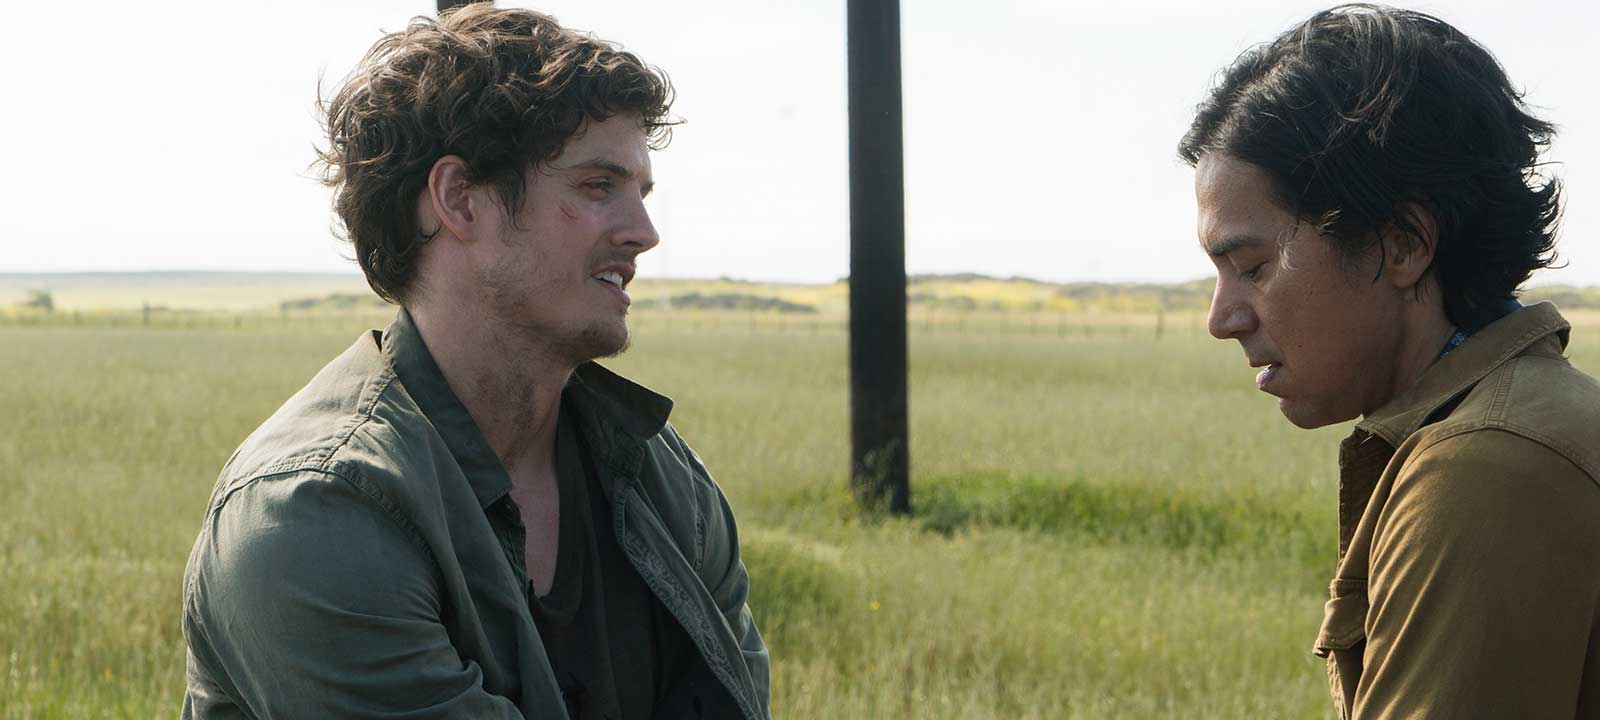 fear-the-walking-dead-episode-309-troy-sharman-800×600-interview